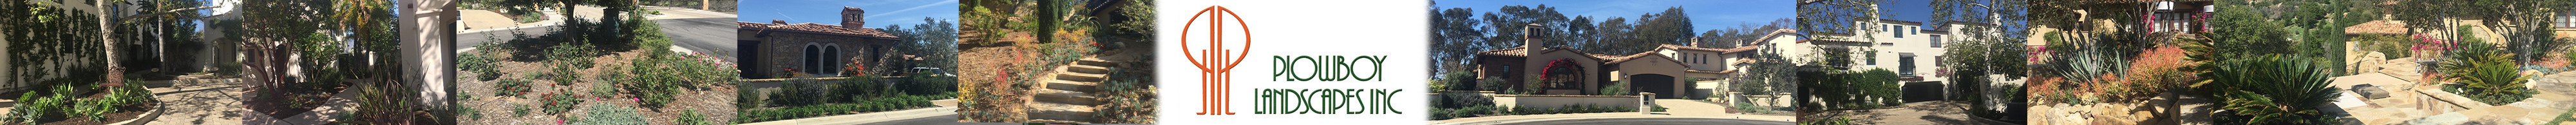 Plowboy Landscapes Inc. Award winning landscaping and maintenance in Ventura and Santa Barbara counties